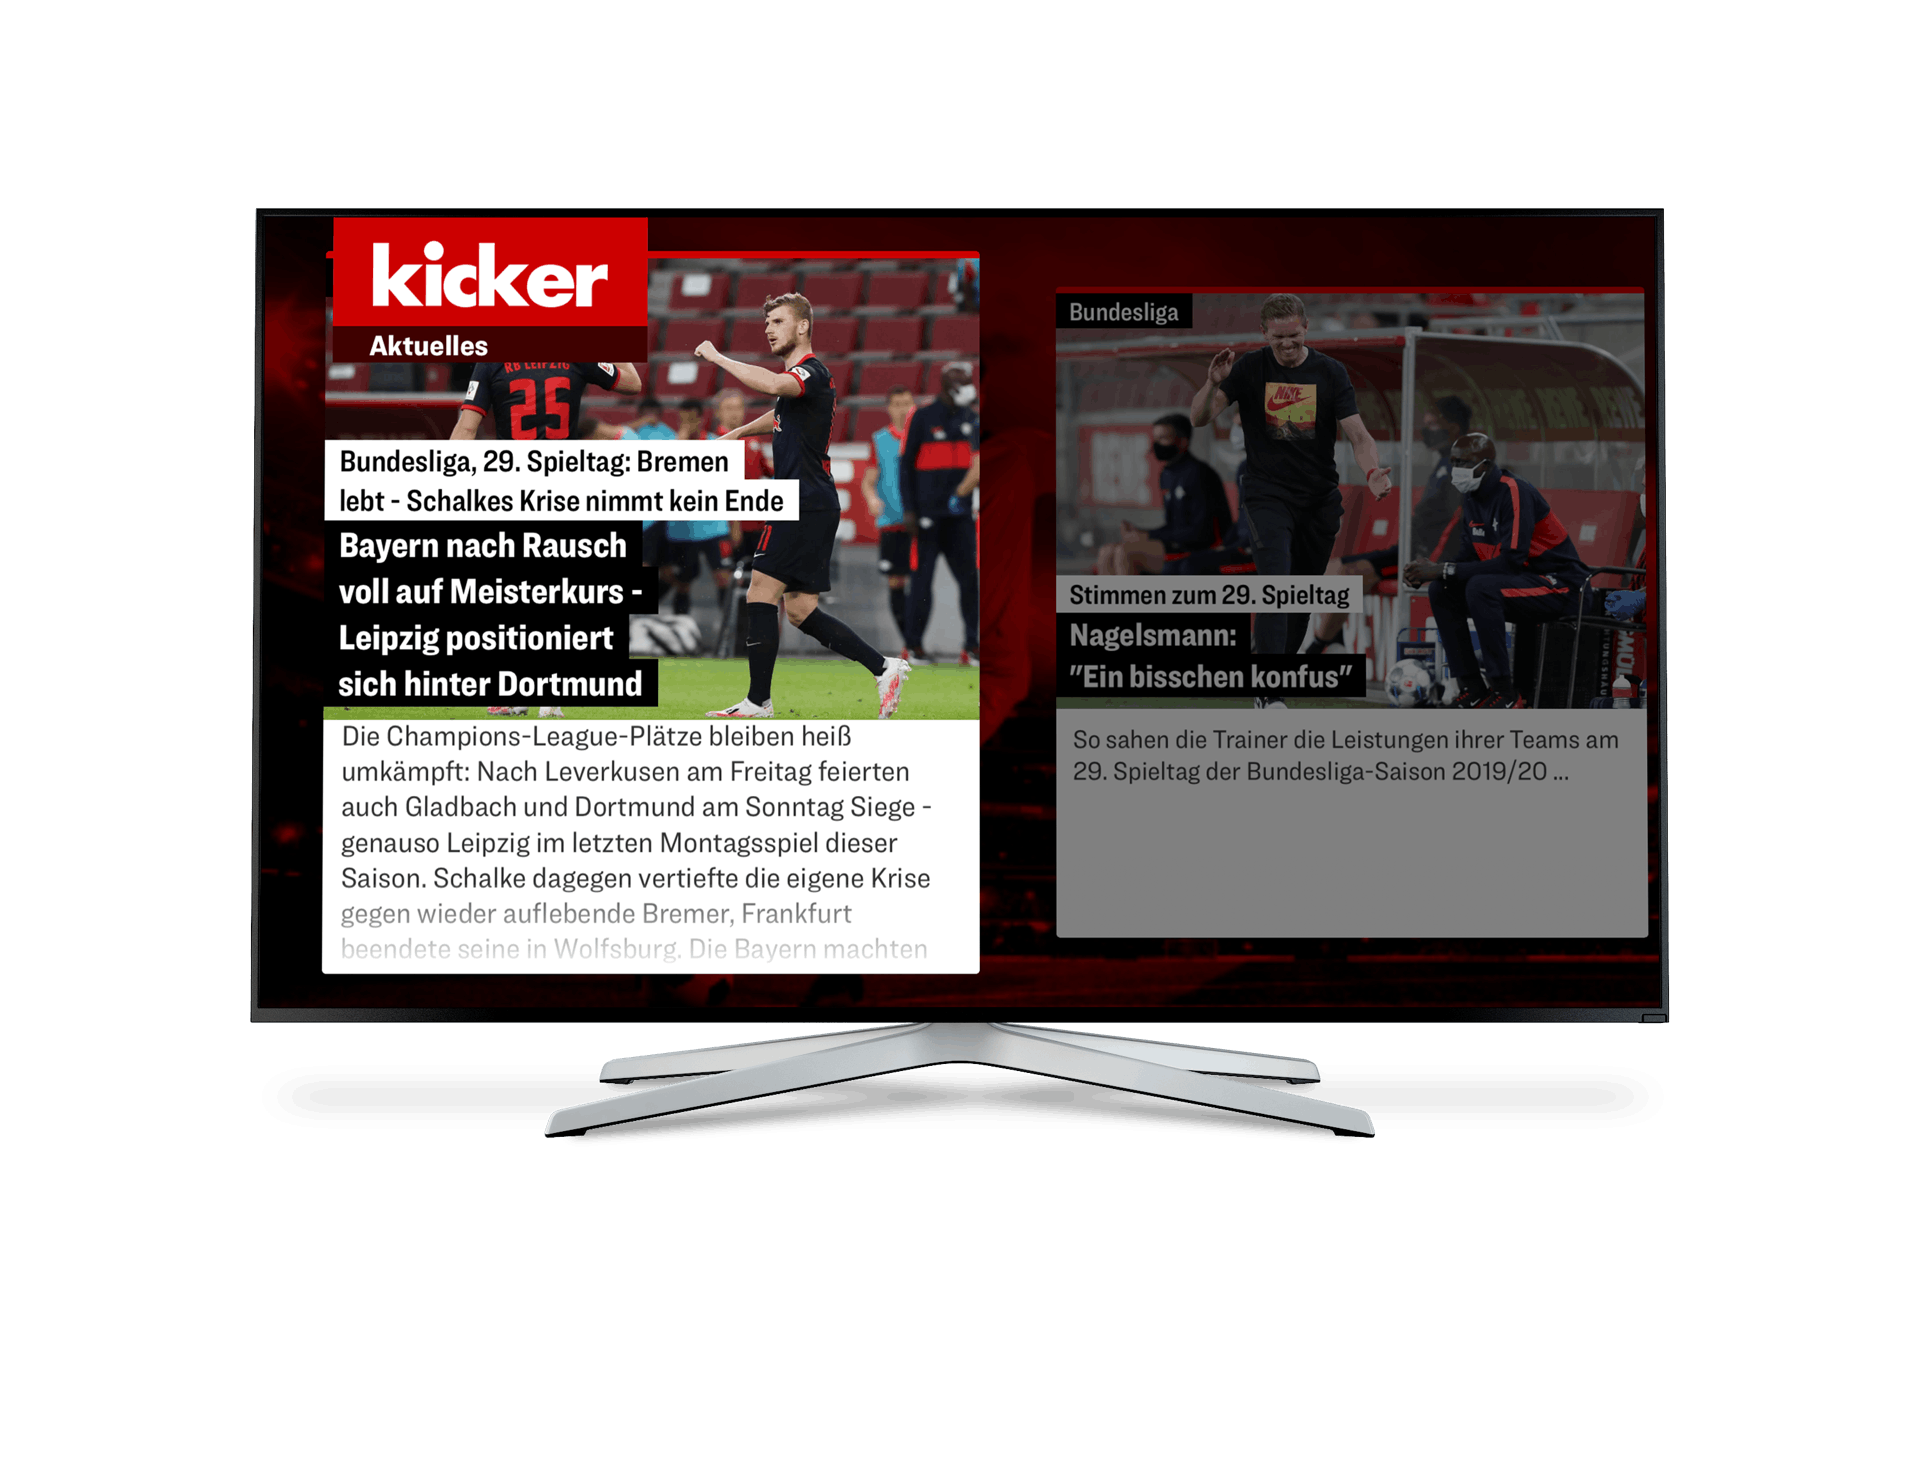 A TV displaying kicker's Smart TV app.